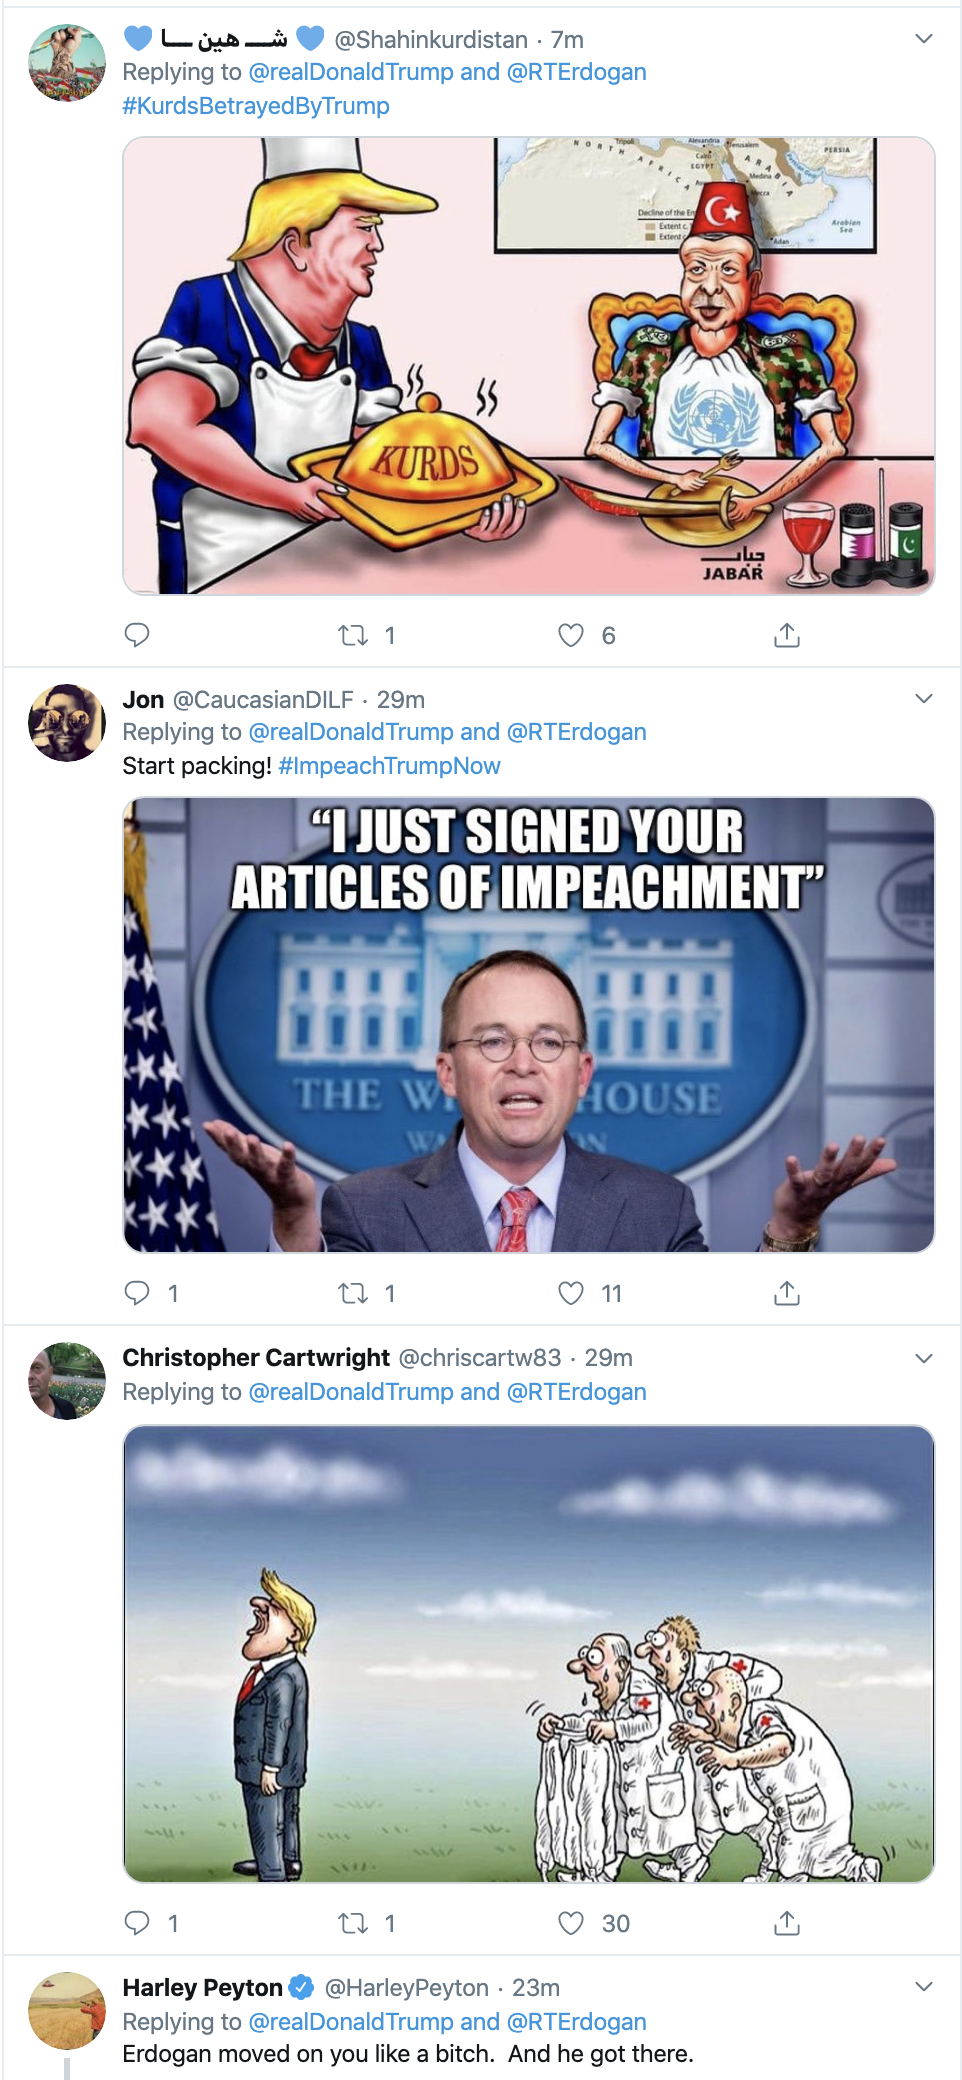 Screen-Shot-2019-10-18-at-11.13.42-AM Trump Has Impeachment Induced 5-Tweet Friday Mental Collapse Corruption Crime Donald Trump Election 2016 Election 2020 Foreign Policy Hate Speech Human Rights Impeachment Mass Shootings National Security Politics Russia Scandal Social Media Top Stories